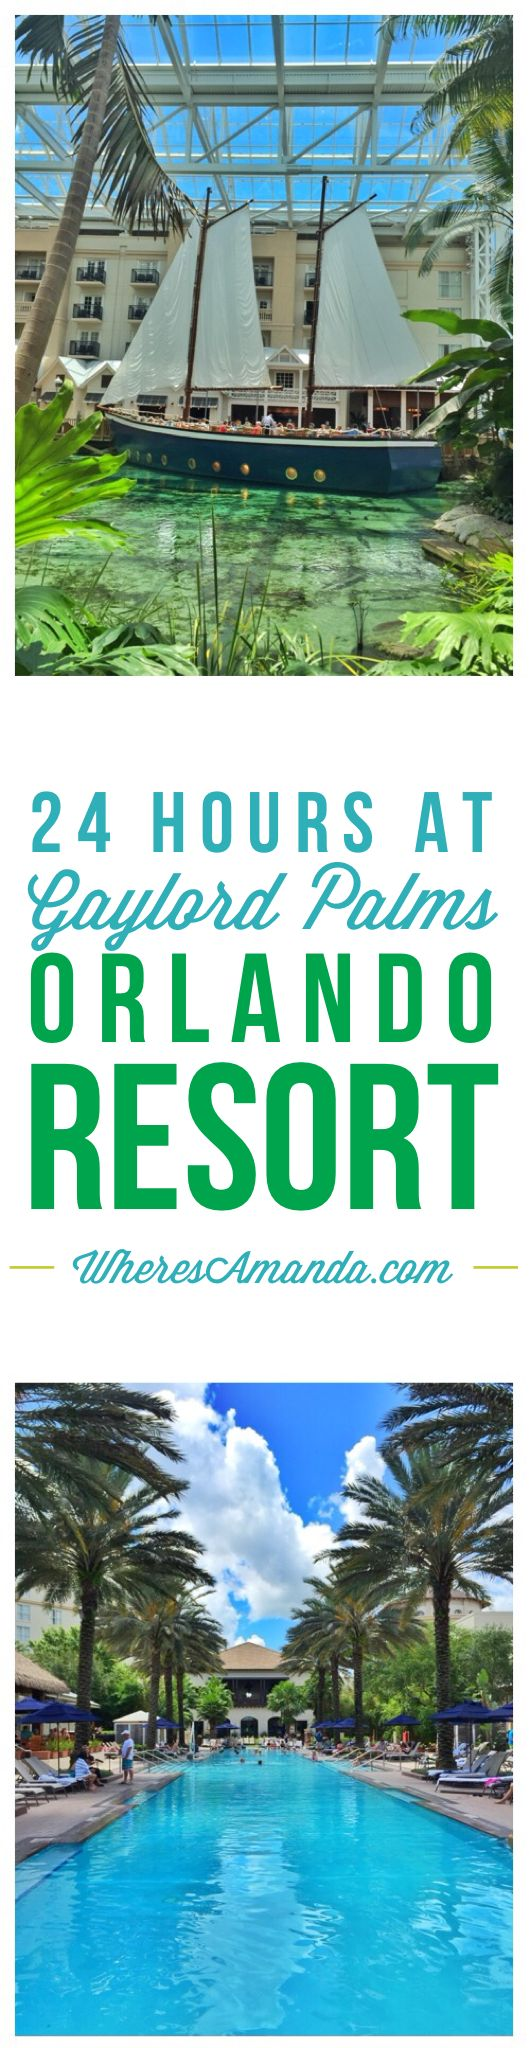 24 Hours at the Gaylord Palms Orlando Resort